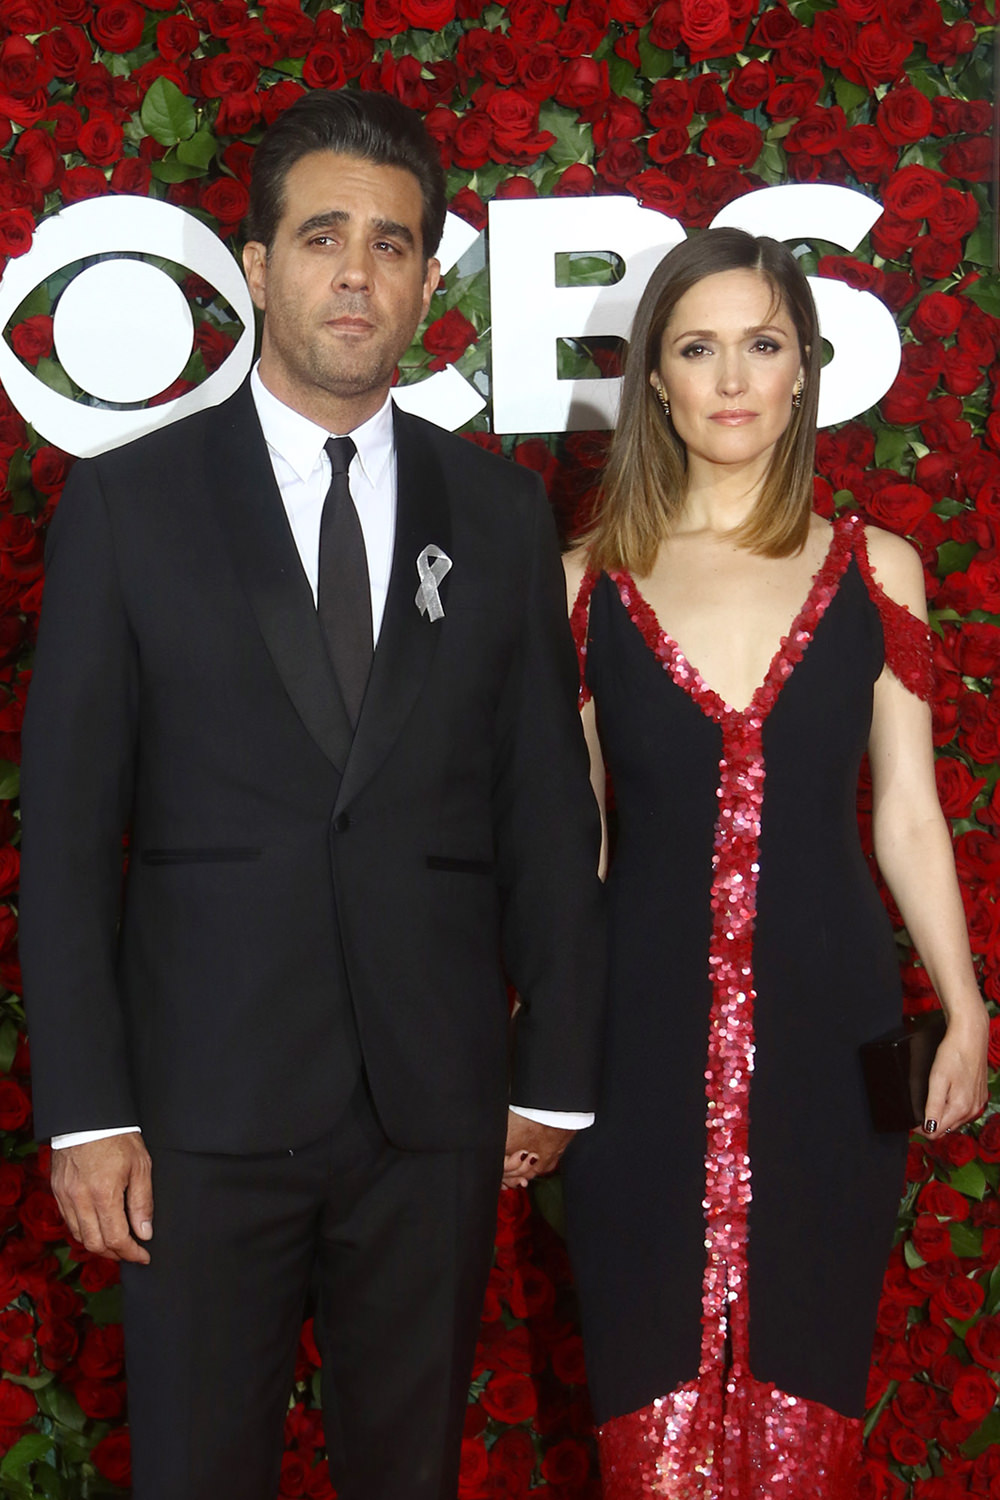 Bobby-Cannavale-Rose-Byrne-2016-Tony-Awards-Red-Carpet-Fashion-Thakoon-Tom-Lorenzo-Site (1)